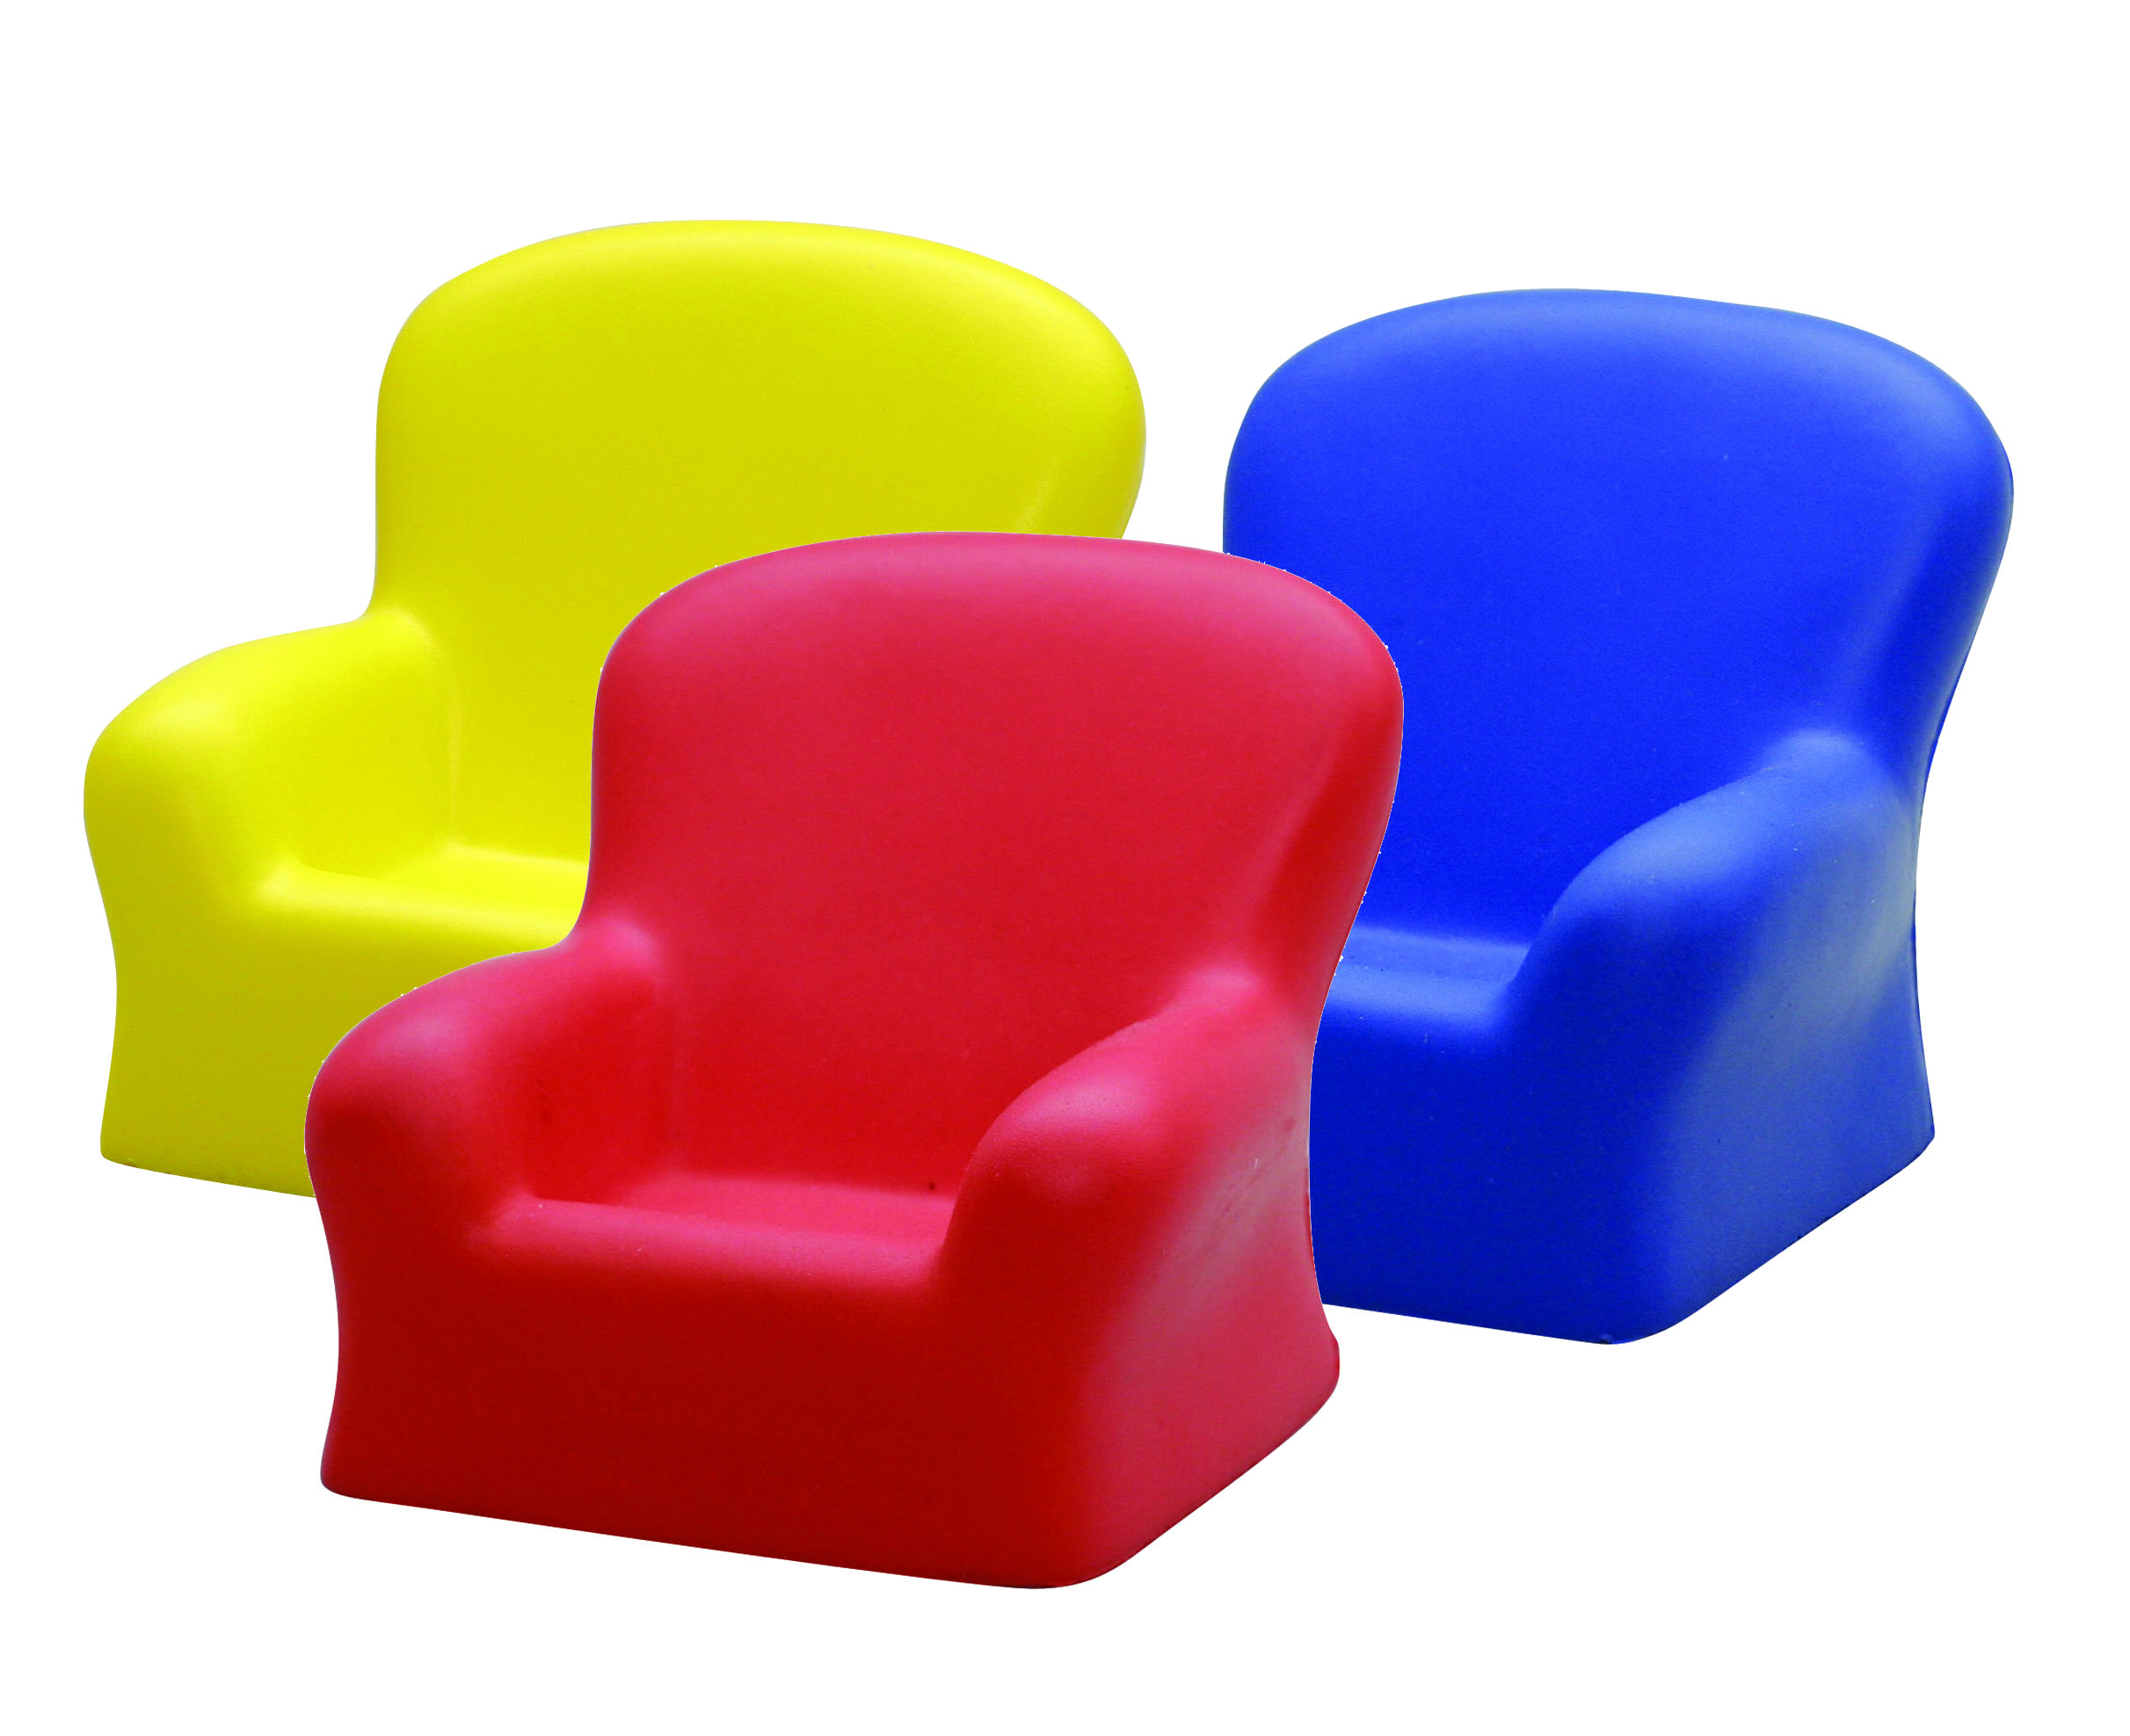 CHAIR  (red, yellow, blue)